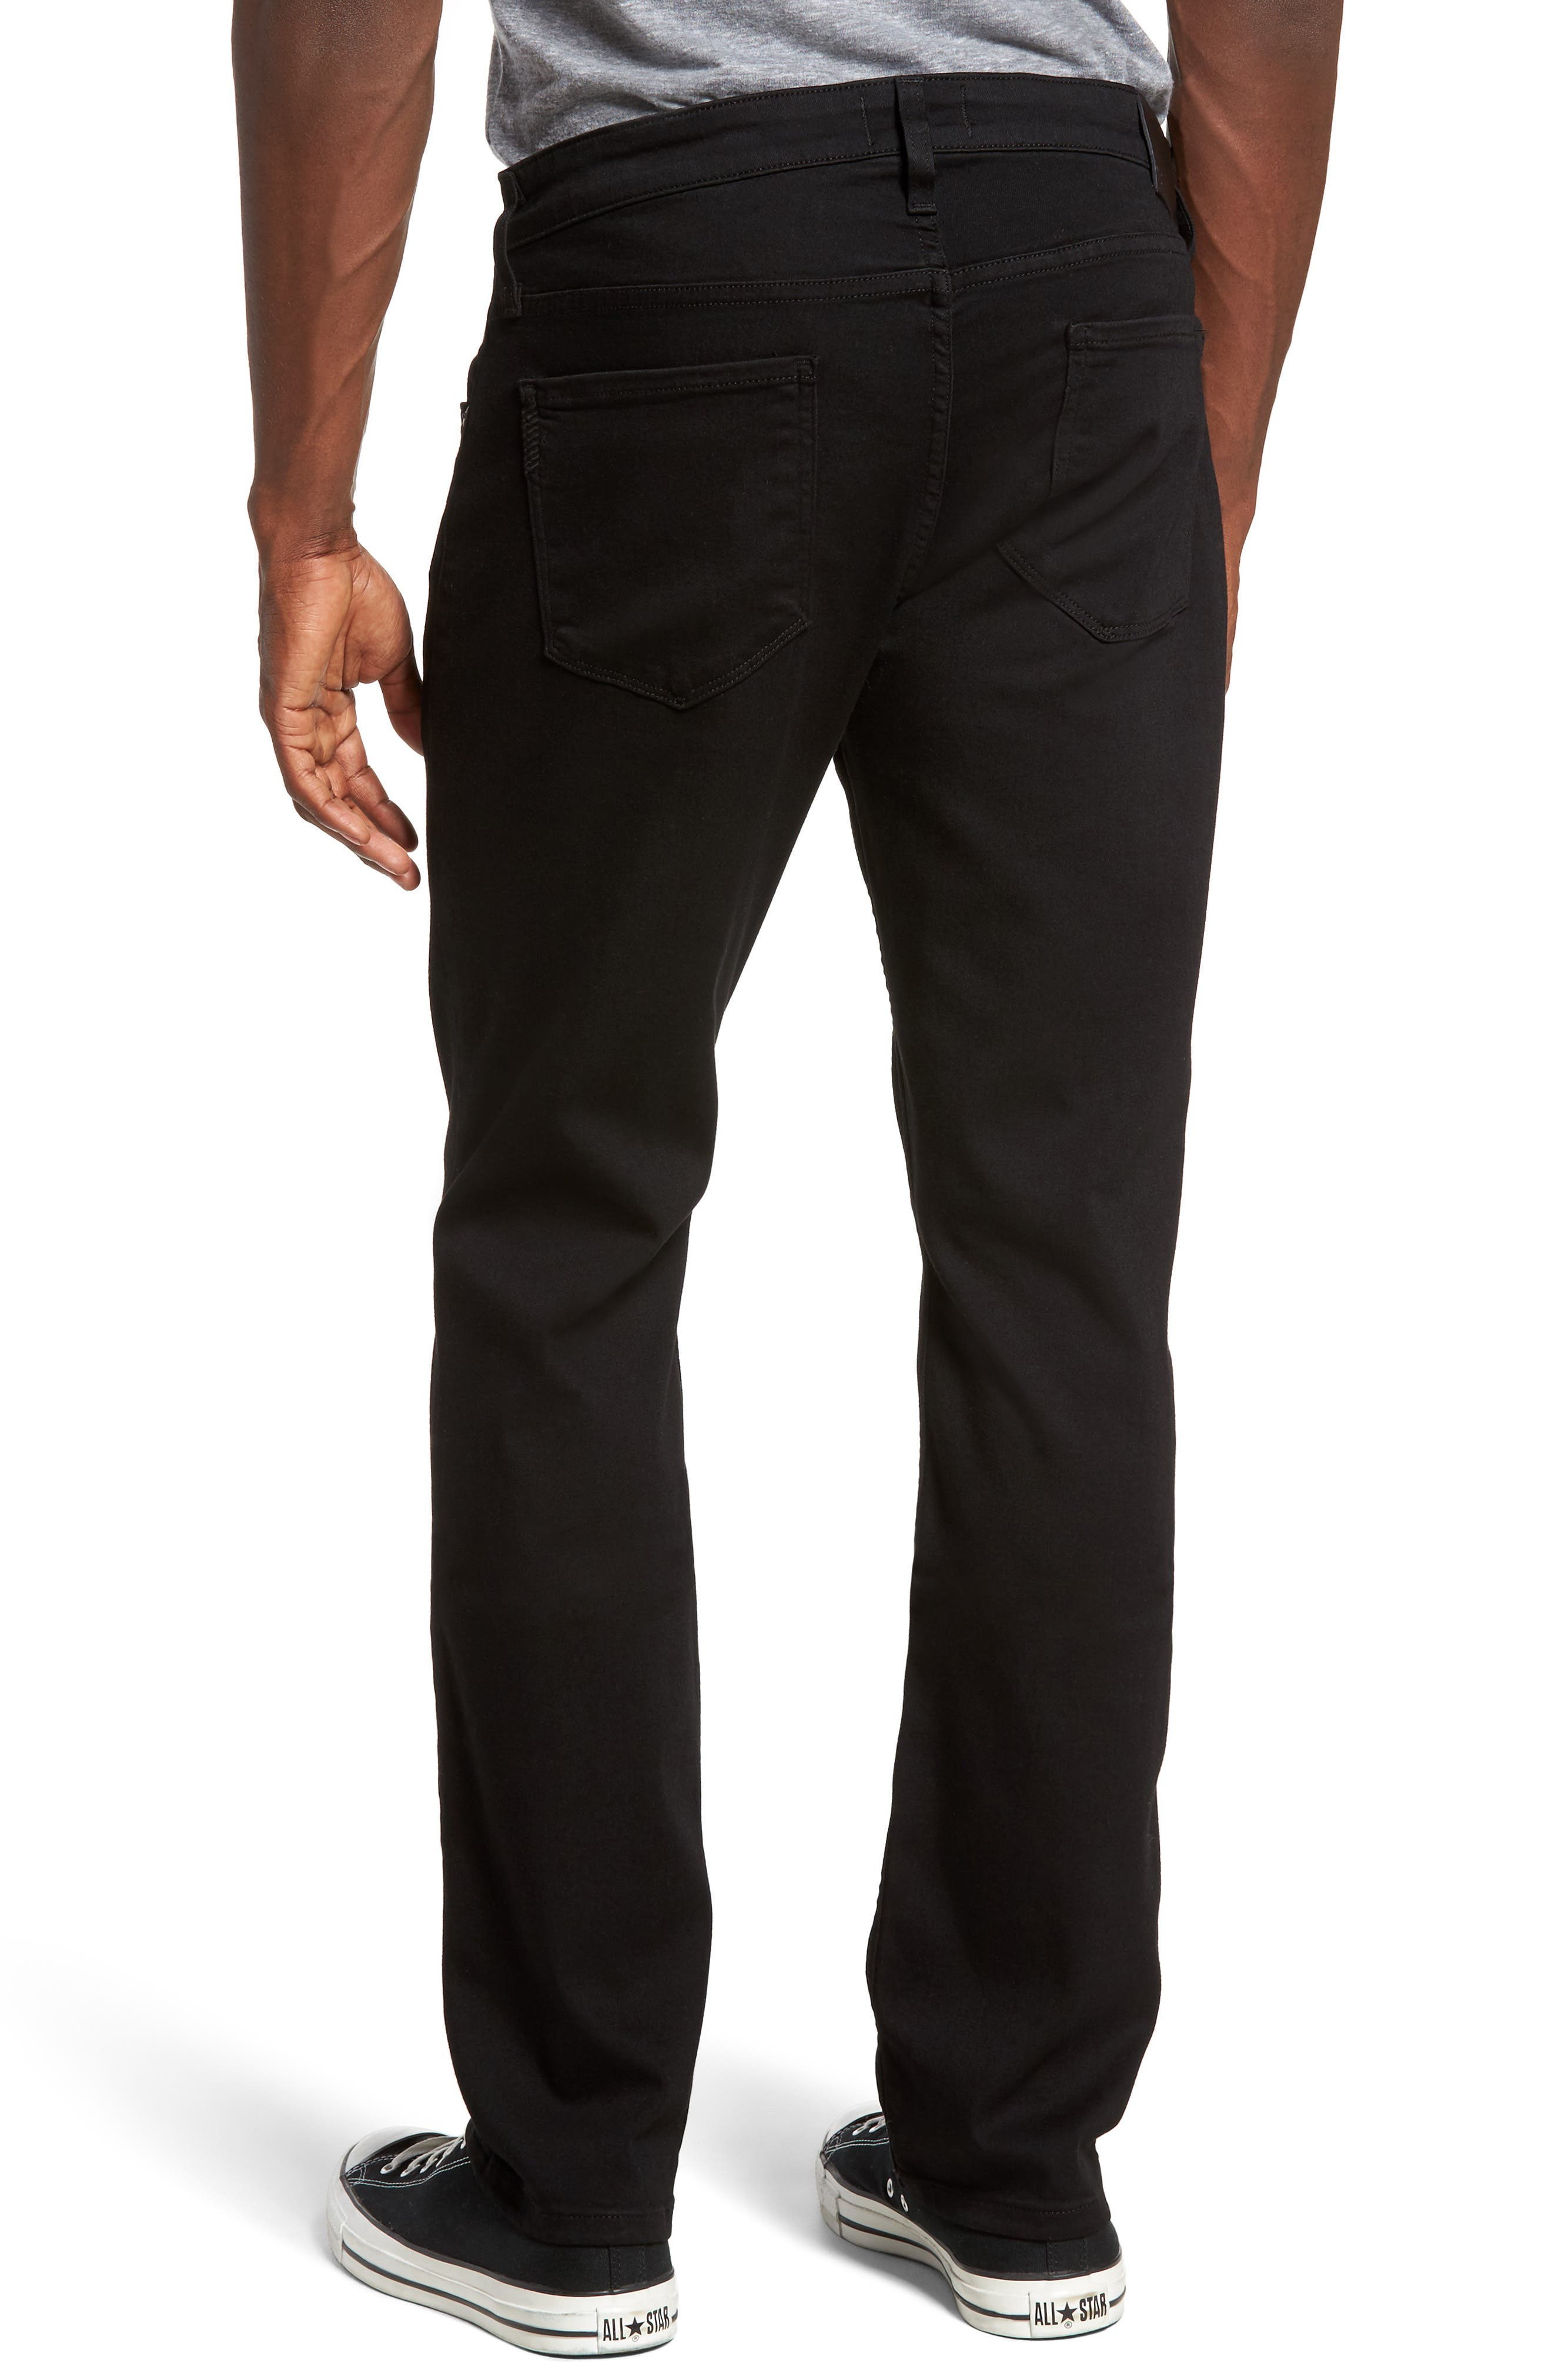 PAIGE, Federal Slim Straight Leg Jeans, Alternate thumbnail 2, color, BLACK SHADOW